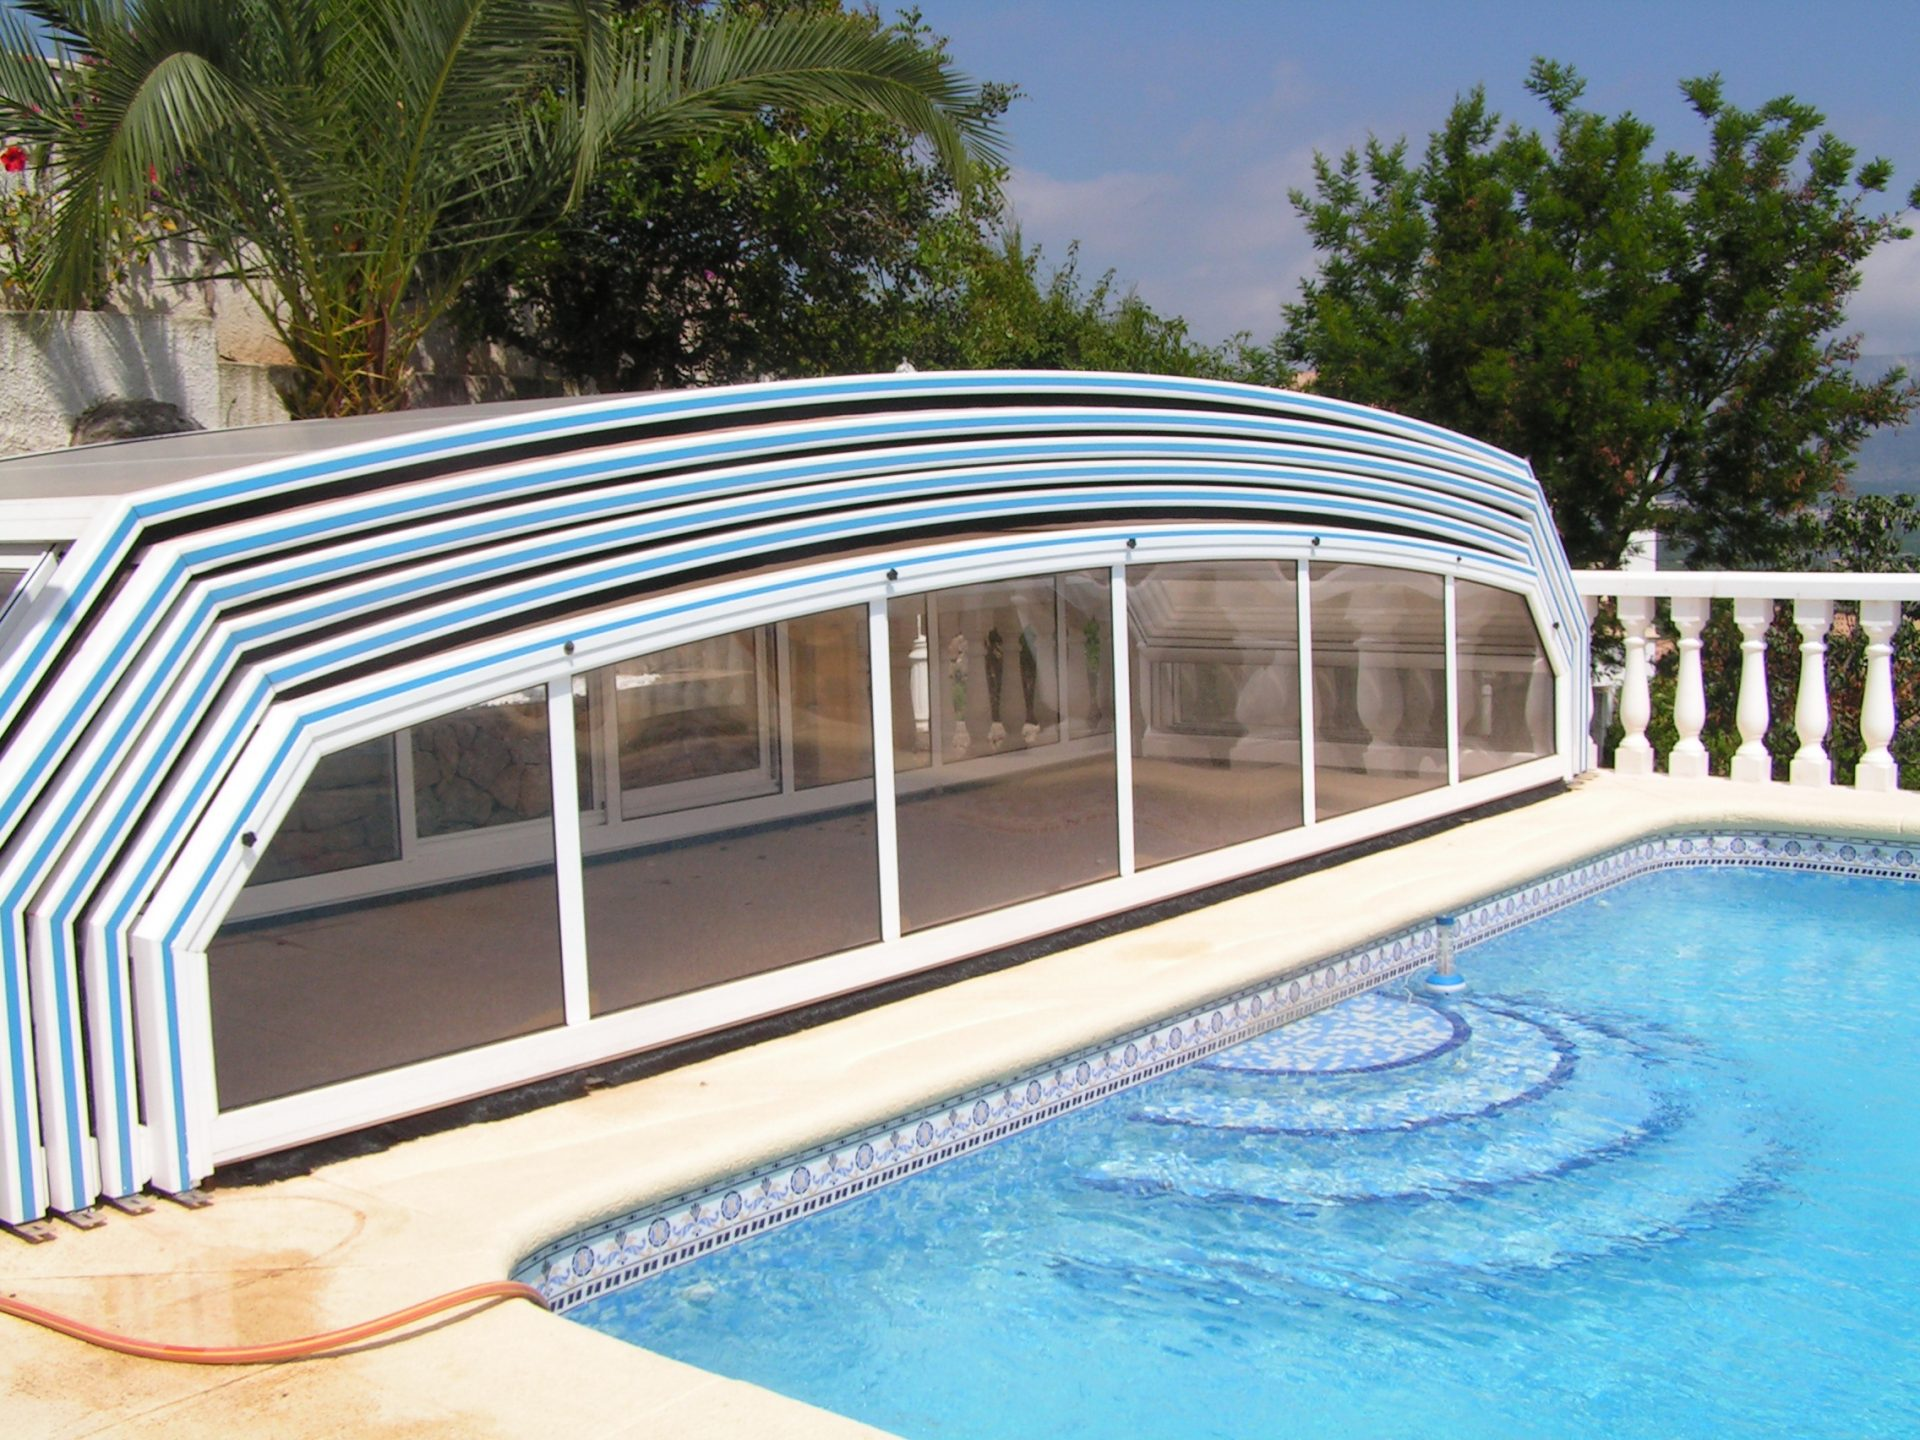 Abri piscine paris t lescopique sur roulette for Abri de piscine bulle